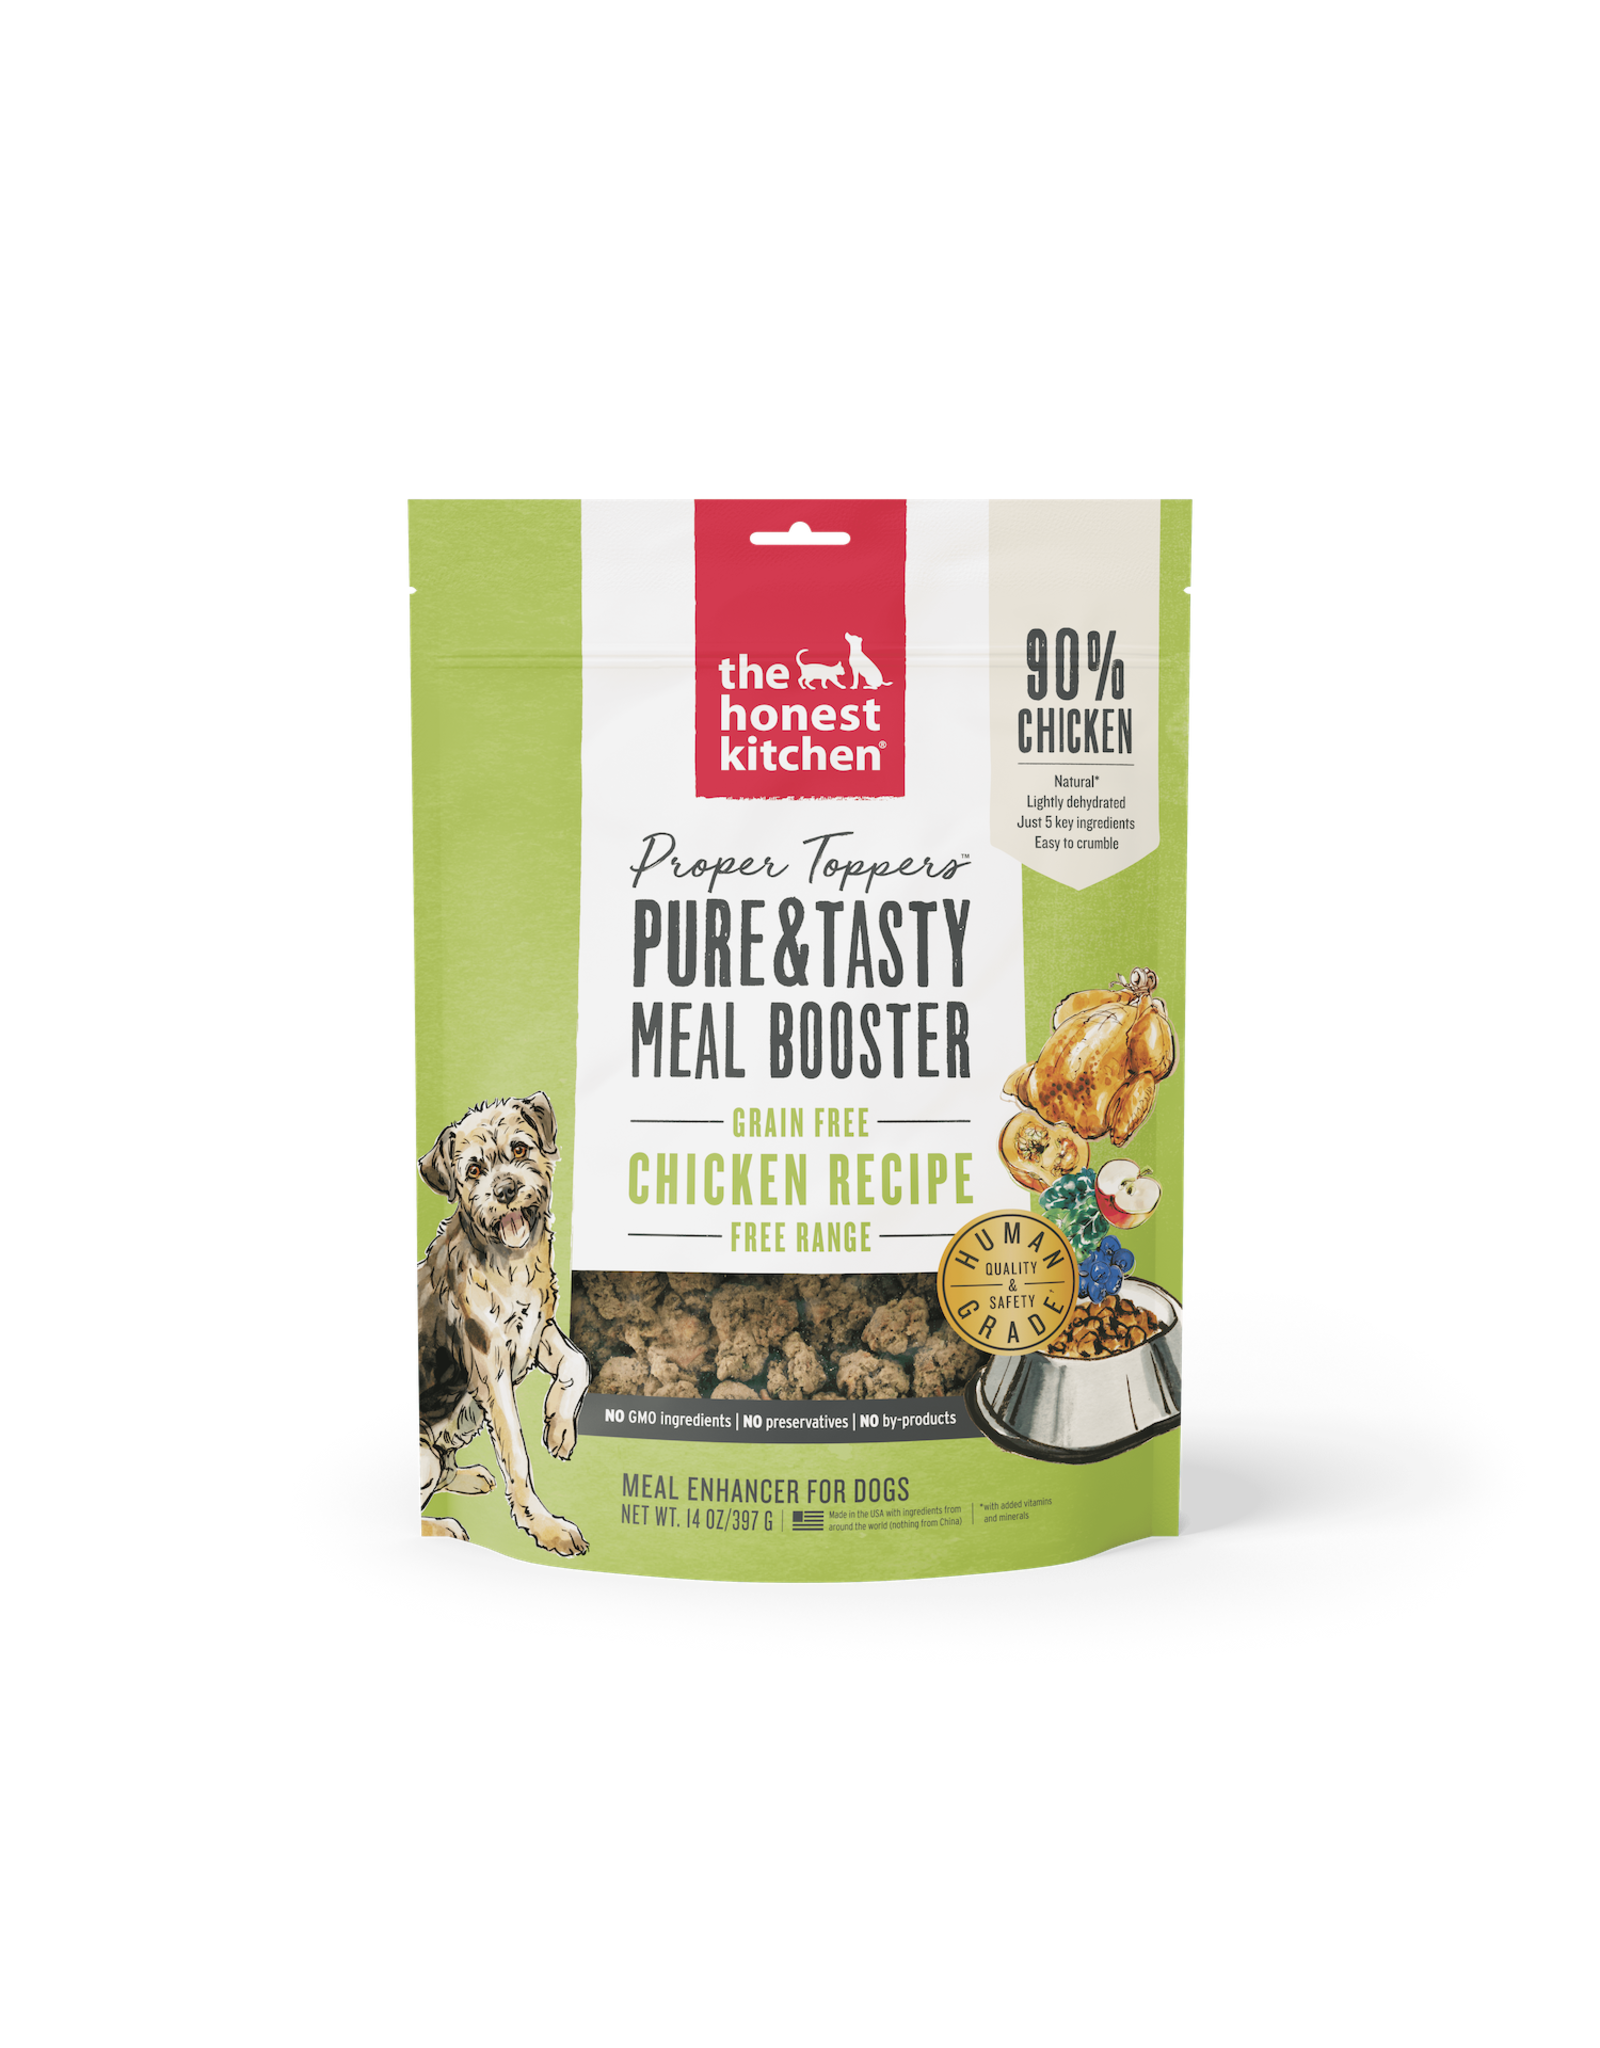 The Honest Kitchen THE HONEST KITCHEN PROPER TOPPERS MEAL ENHANCER FOR DOGS CHICKEN RECIPE 14OZ